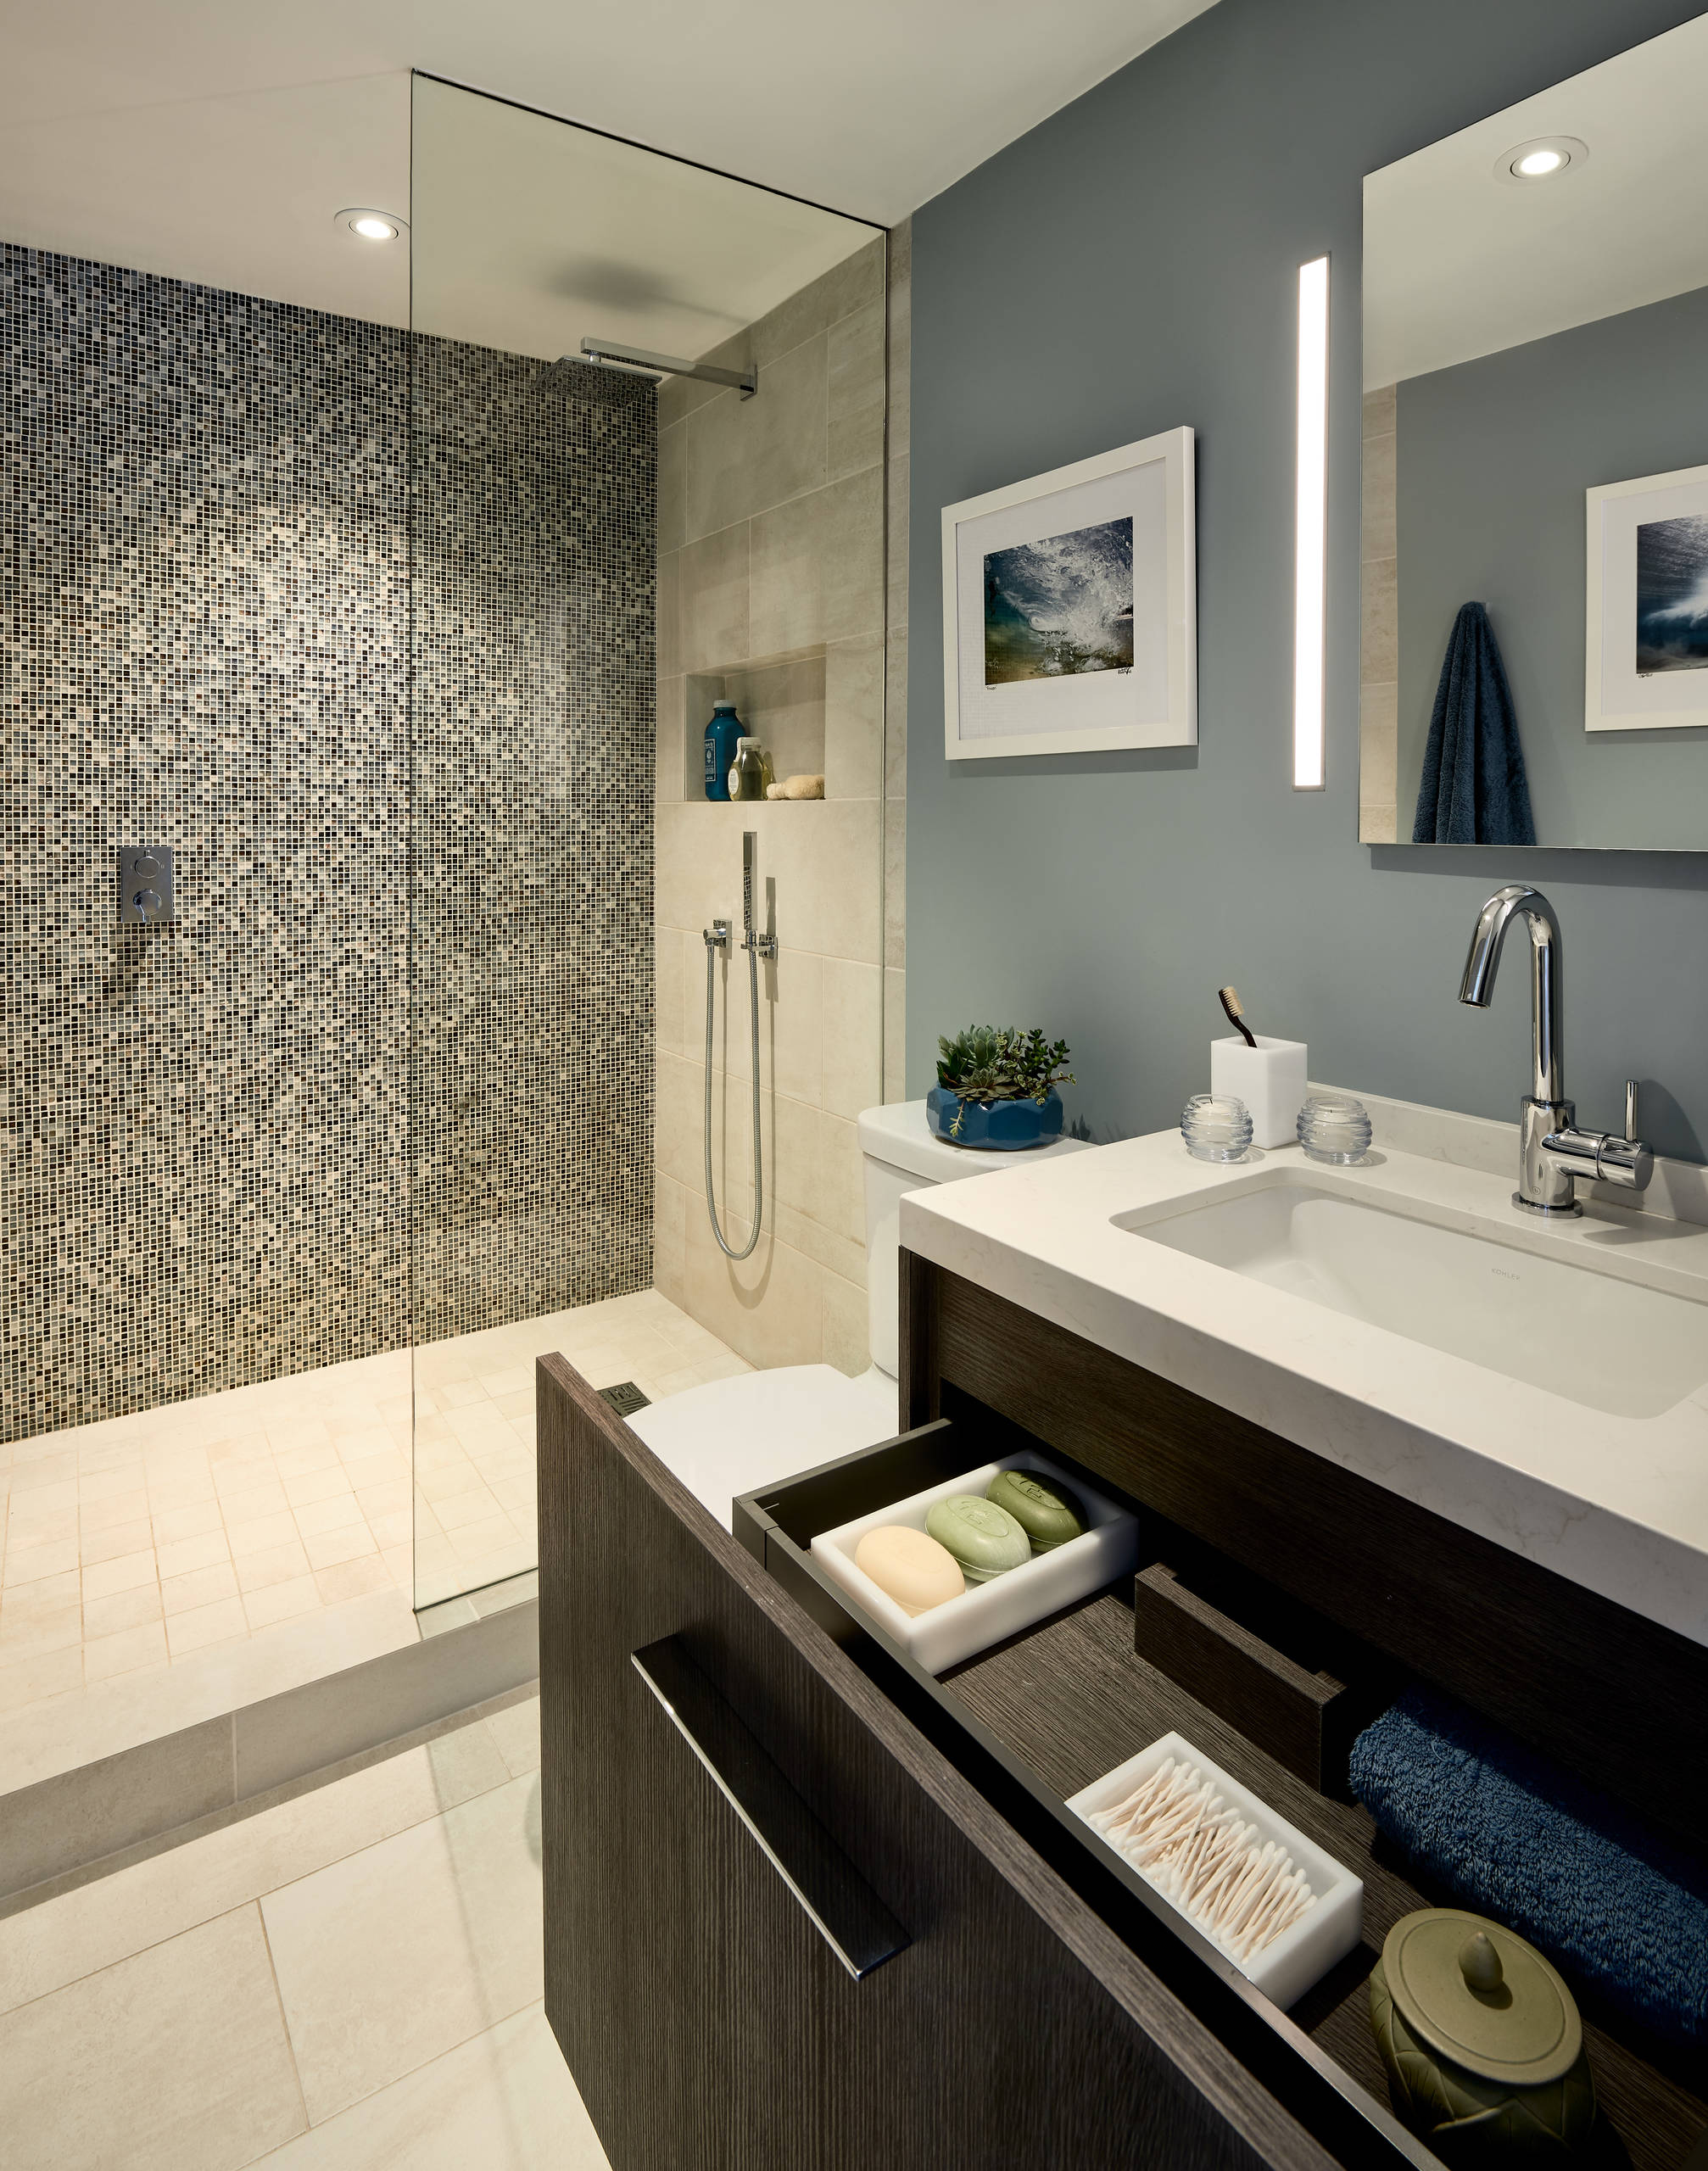 75 Beautiful Contemporary Master Bathroom Pictures Ideas April 2021 Houzz